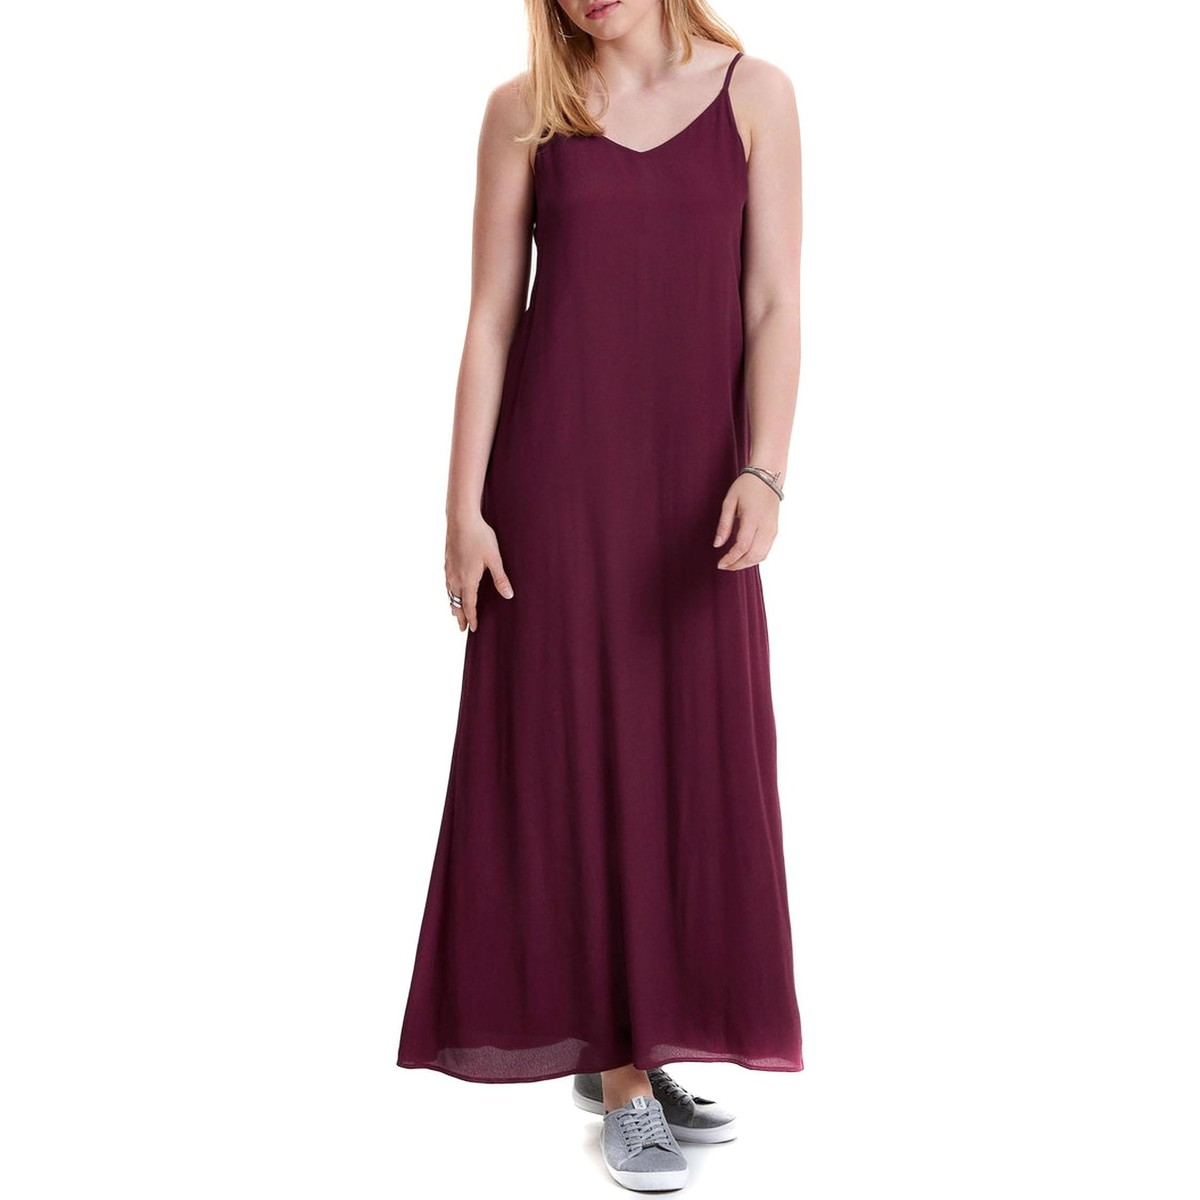 ONLY jurk jessa maxidress rood